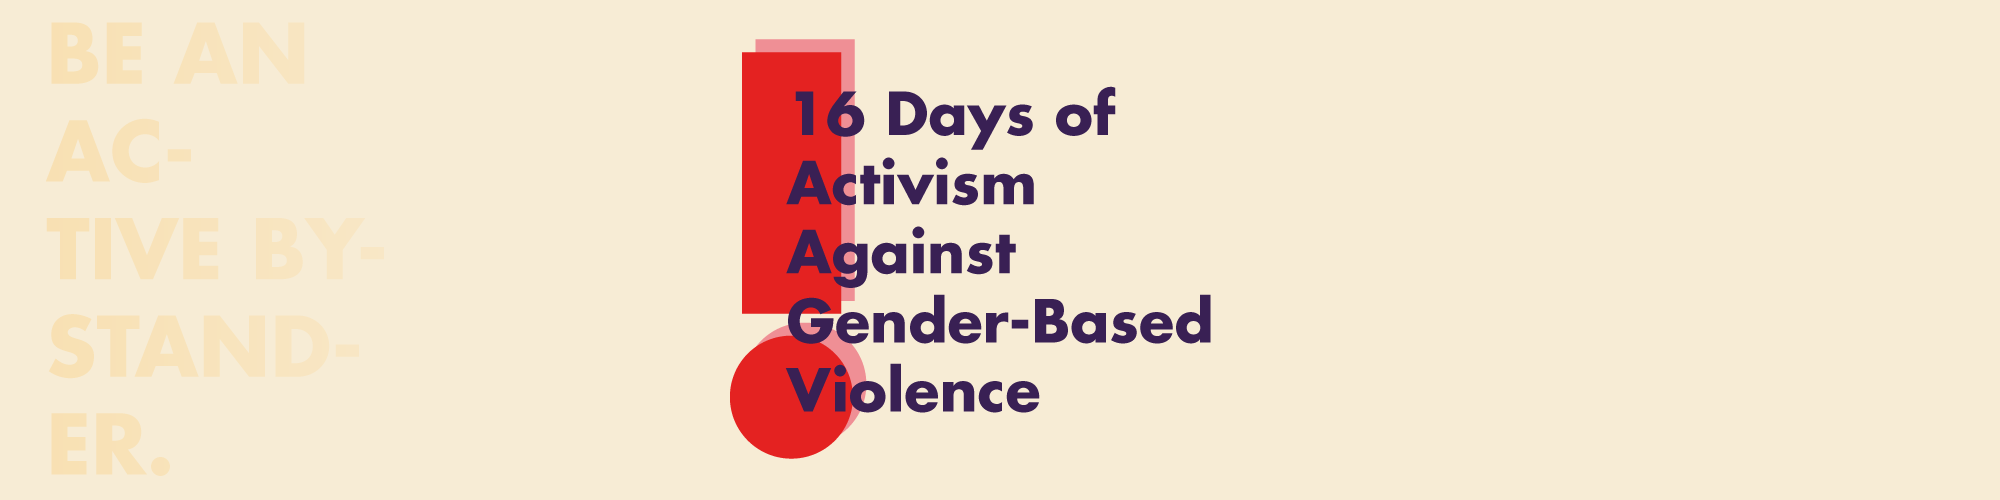 #16days of Activism against Gender-Based Violence Stall